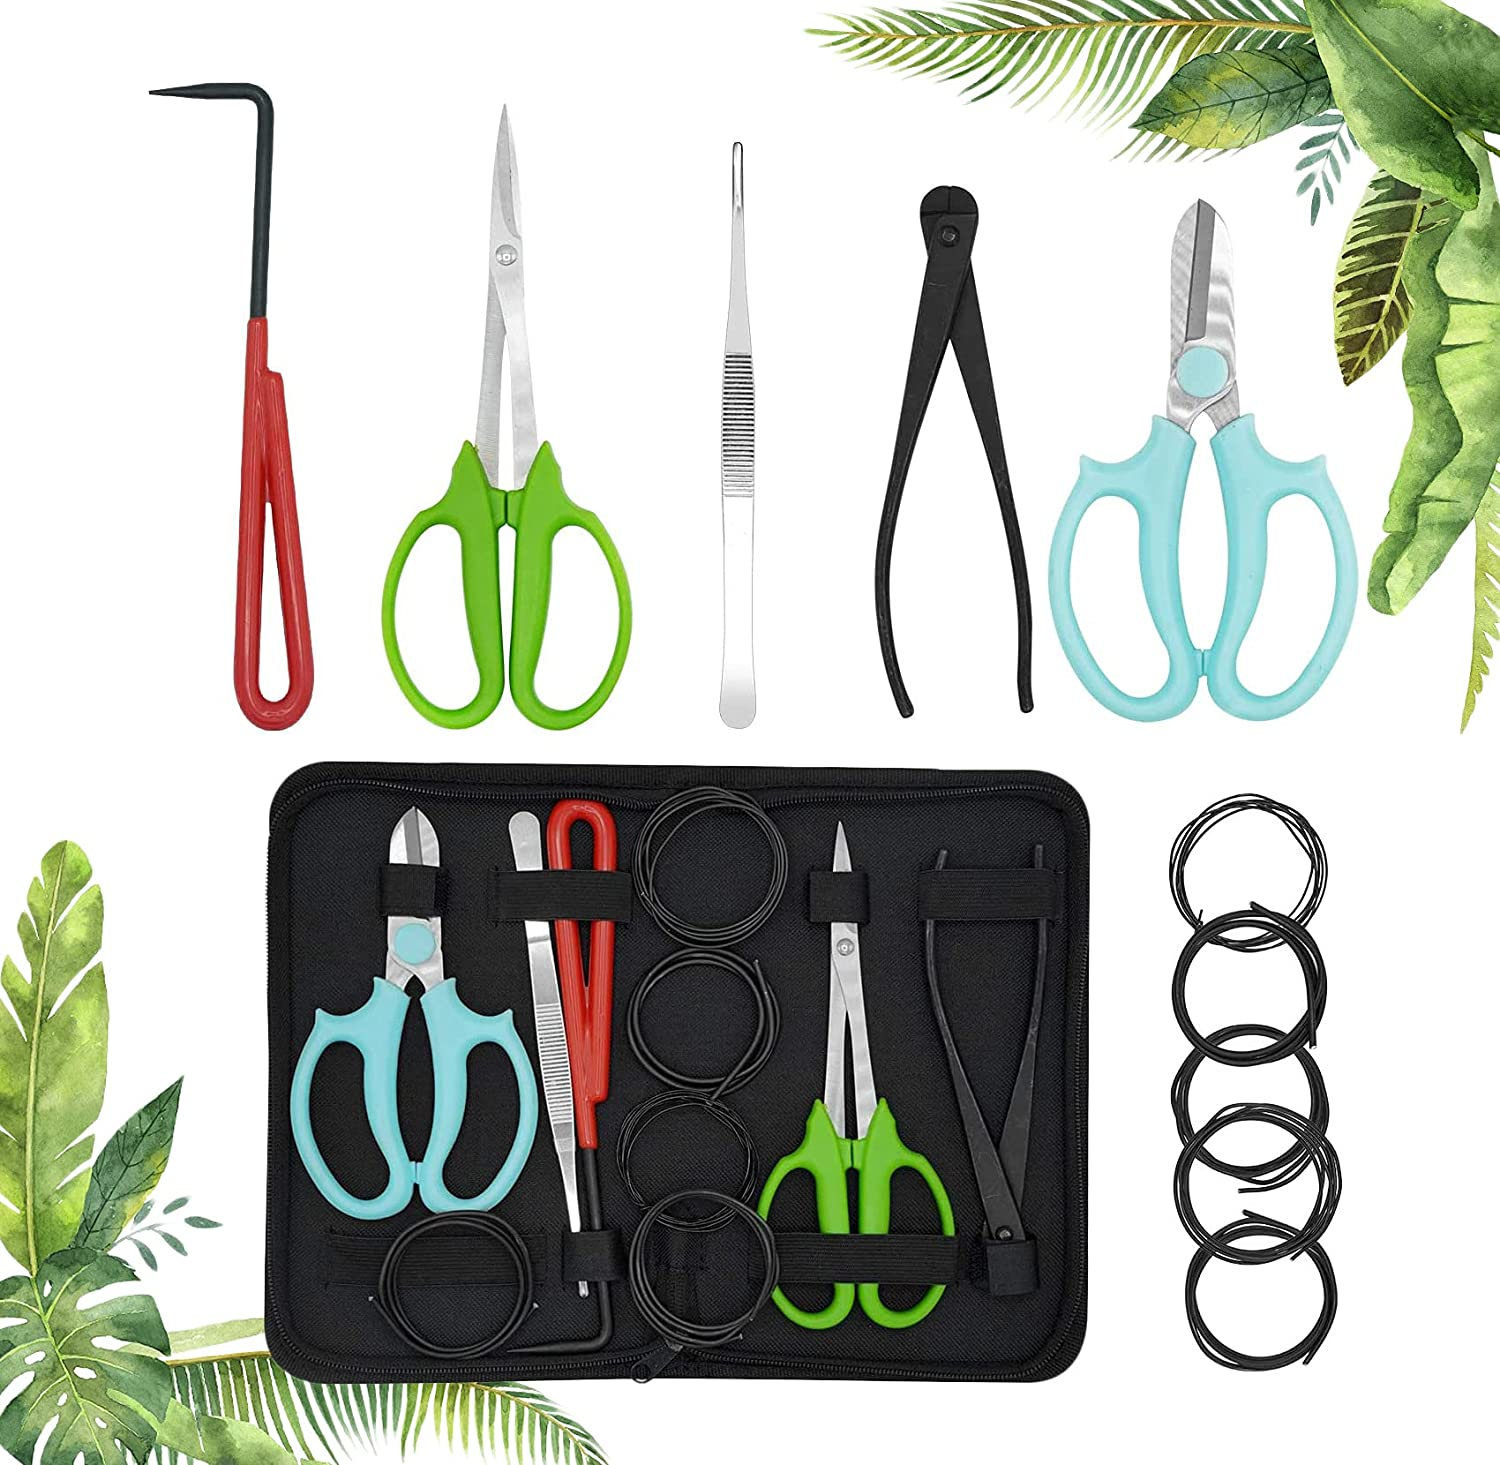 Bonsai Now on sale Tools Set 11pcs Tree Ranking integrated 1st place Gardening Trimming